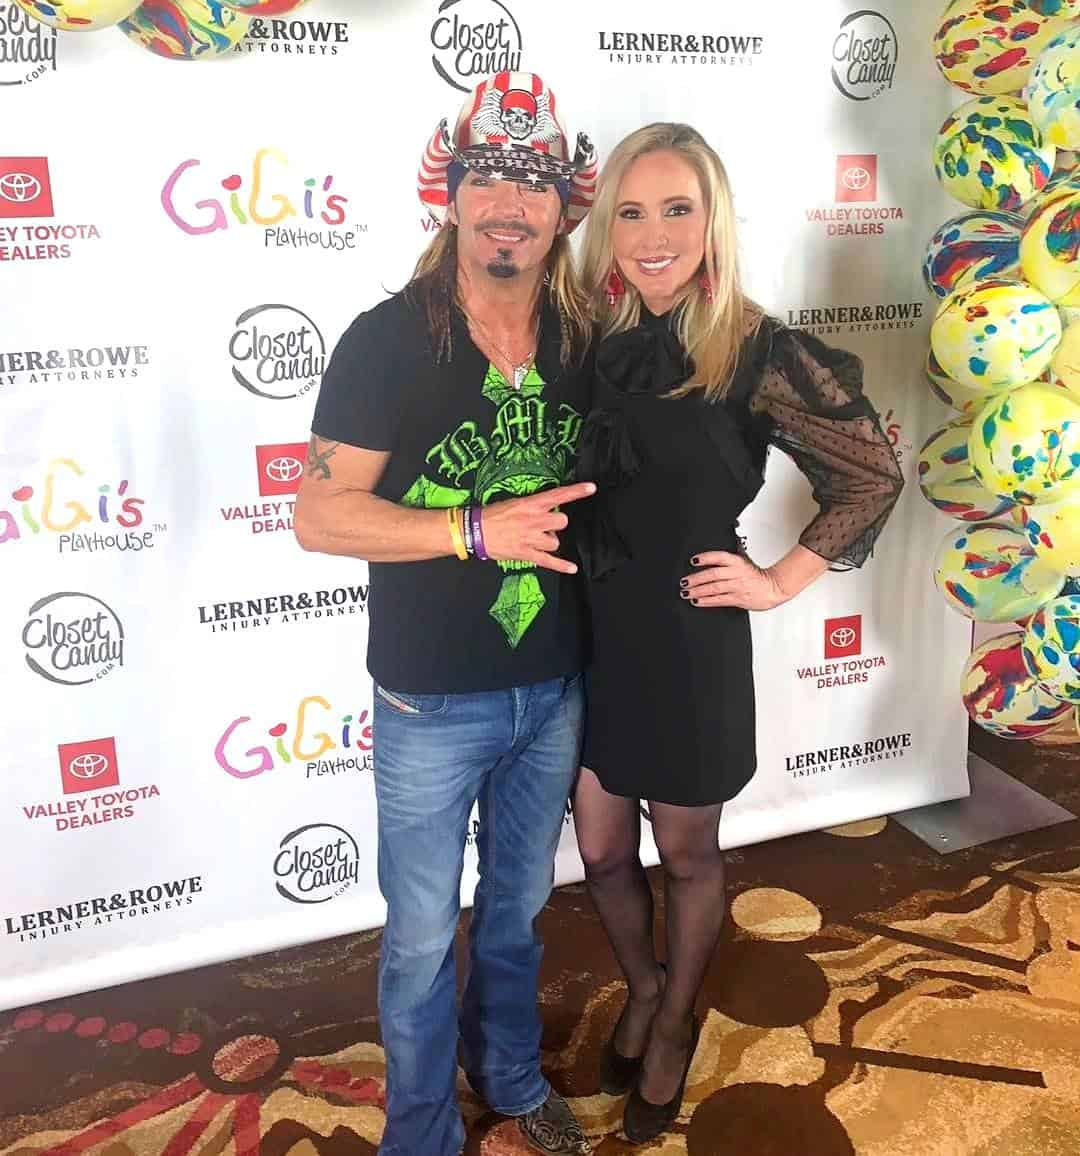 Shannon Beador and Bret Michaels